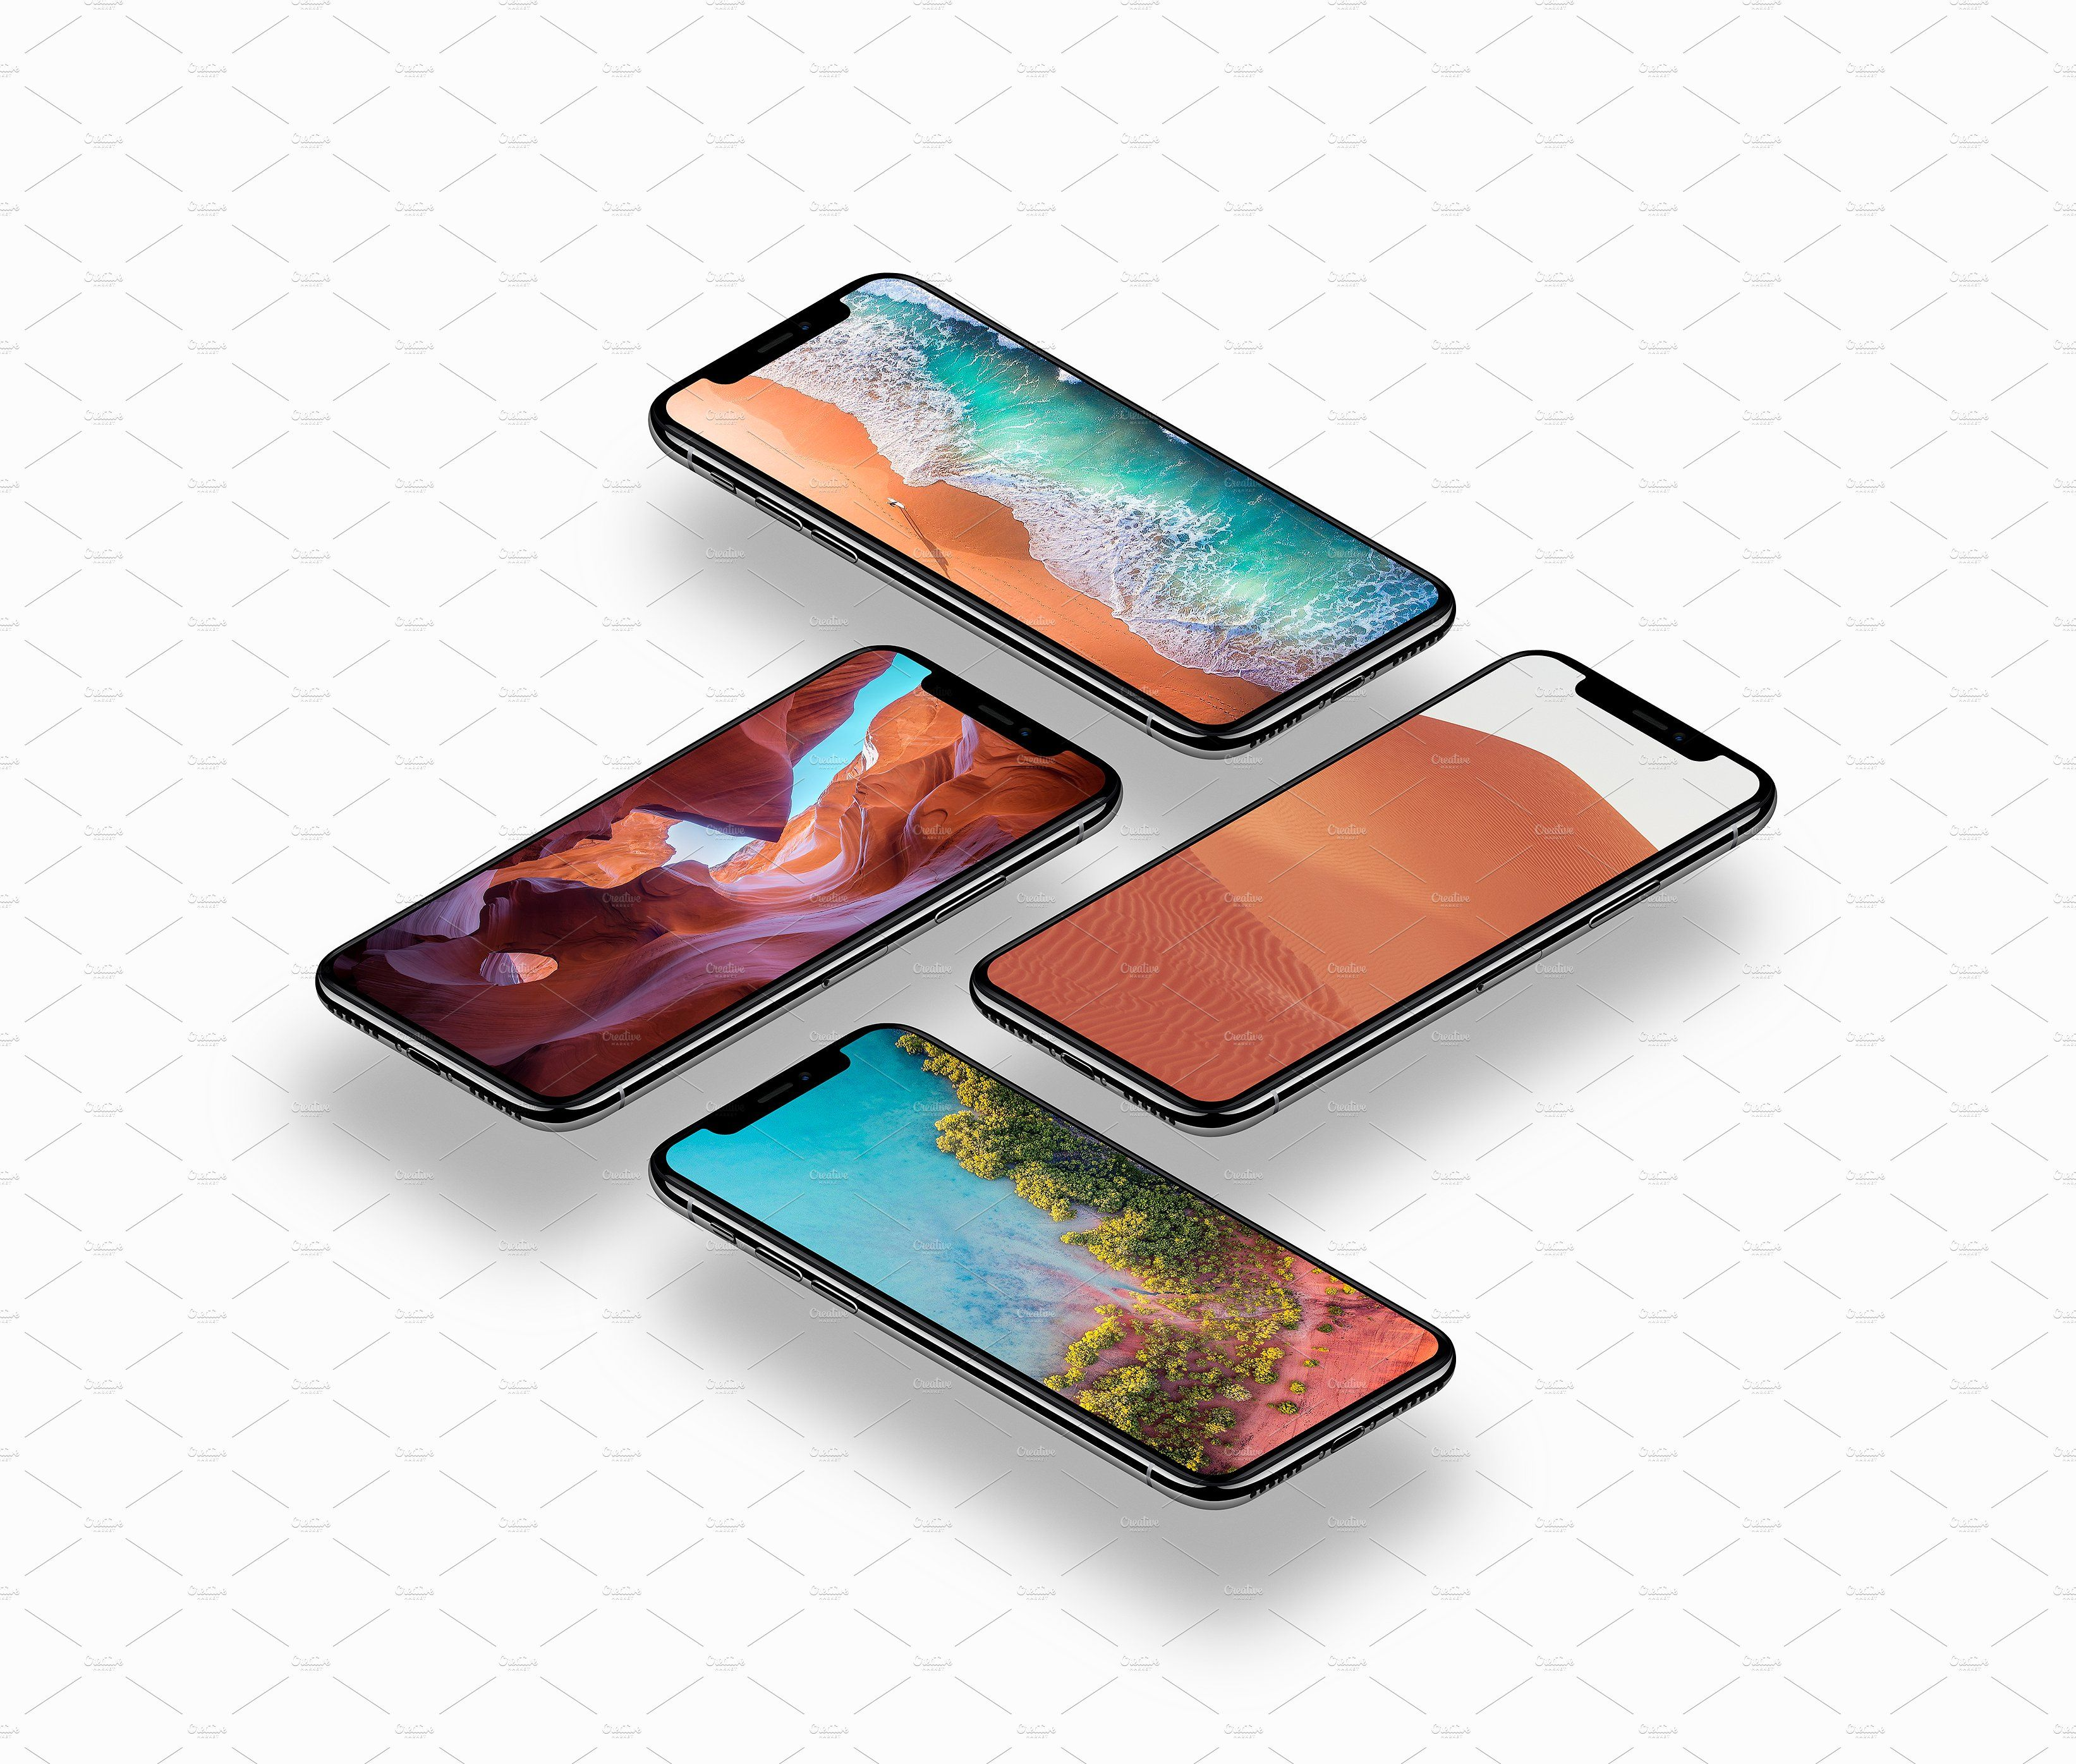 Phone X 16 Mockups (With images) Mockup, Apple iphone